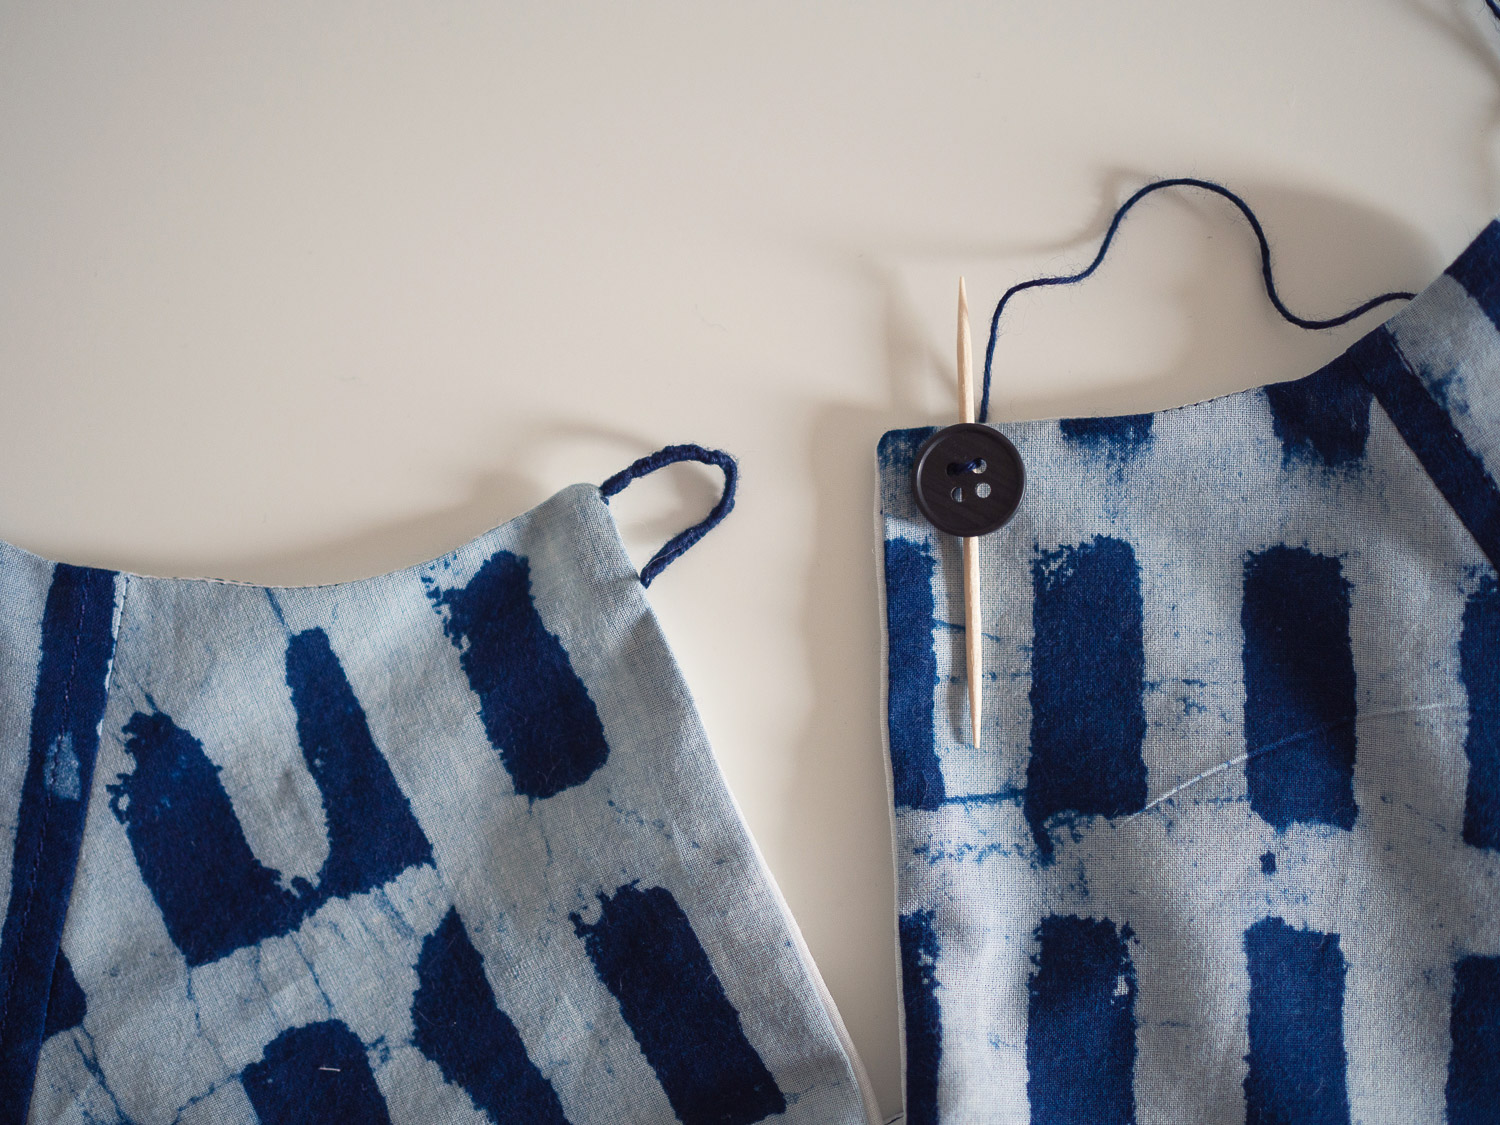 collins_sewing_button_5